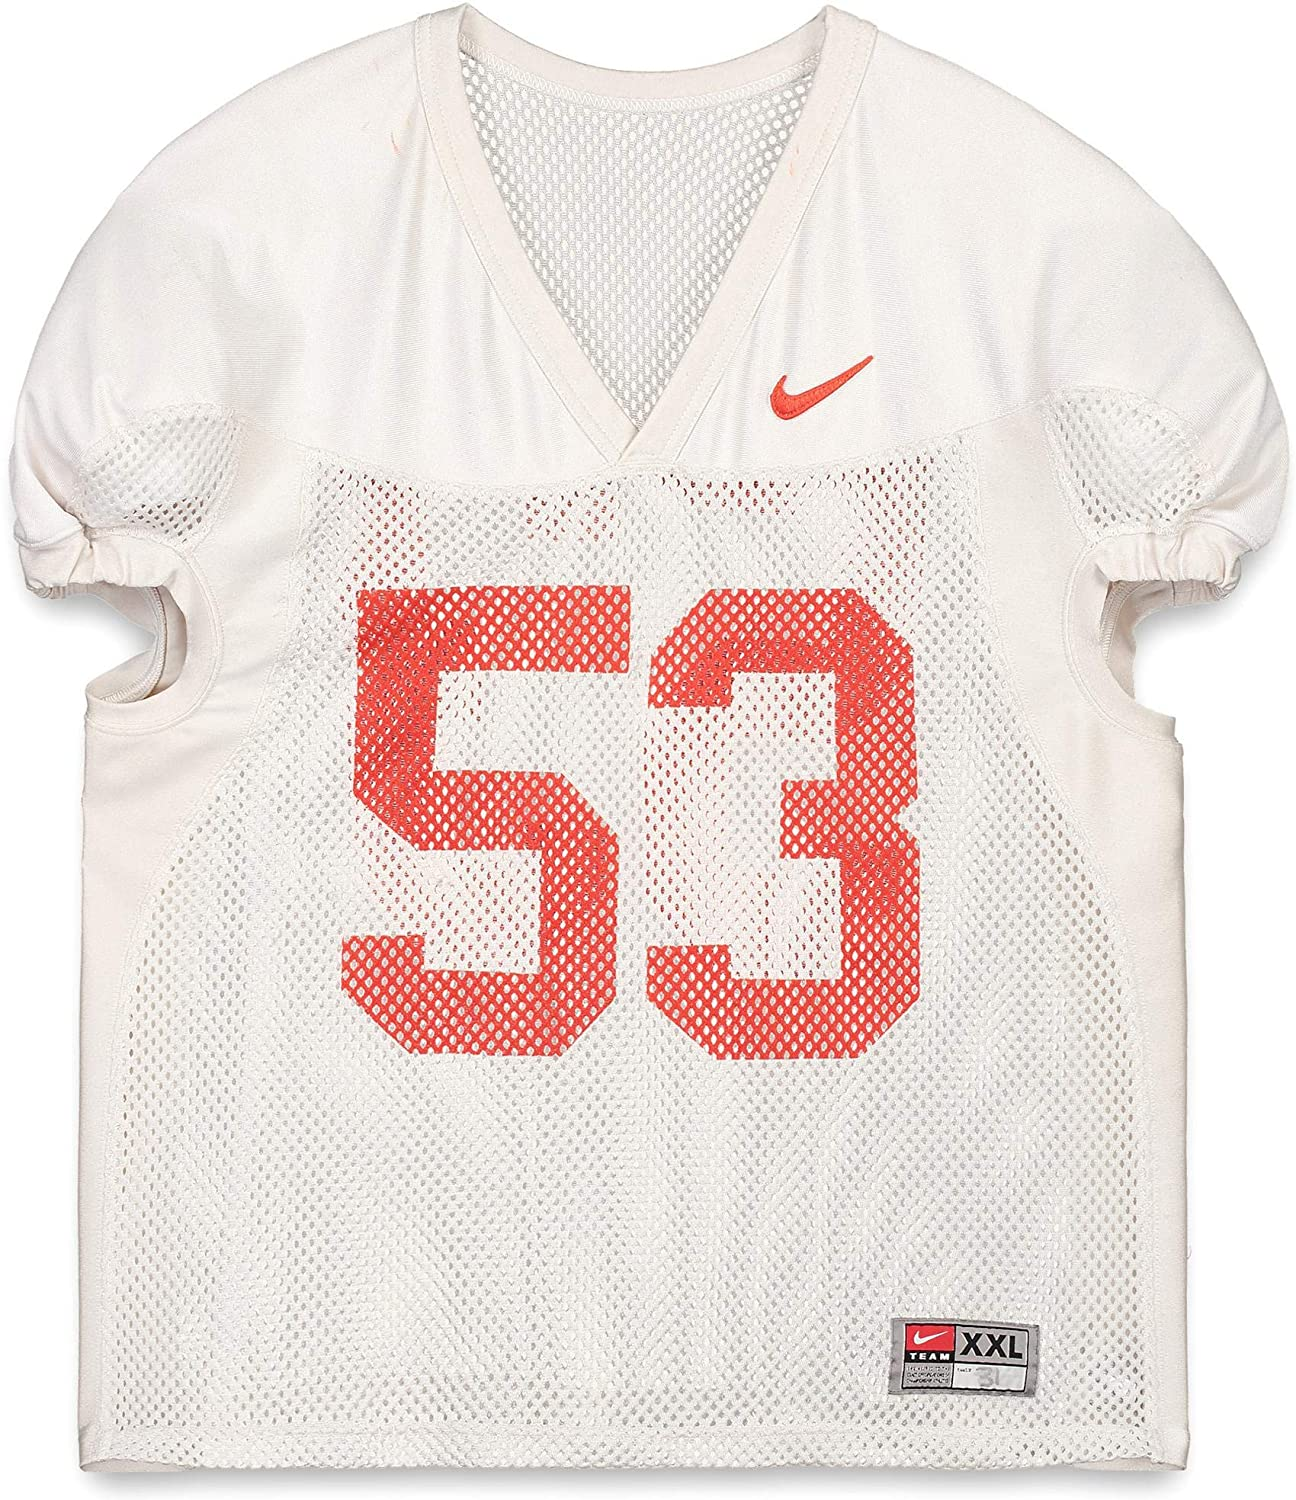 Clemson Tigers Practice-Used #53 White Jersey from the 2015-17 Football Seasons - Fanatics Authentic Certified